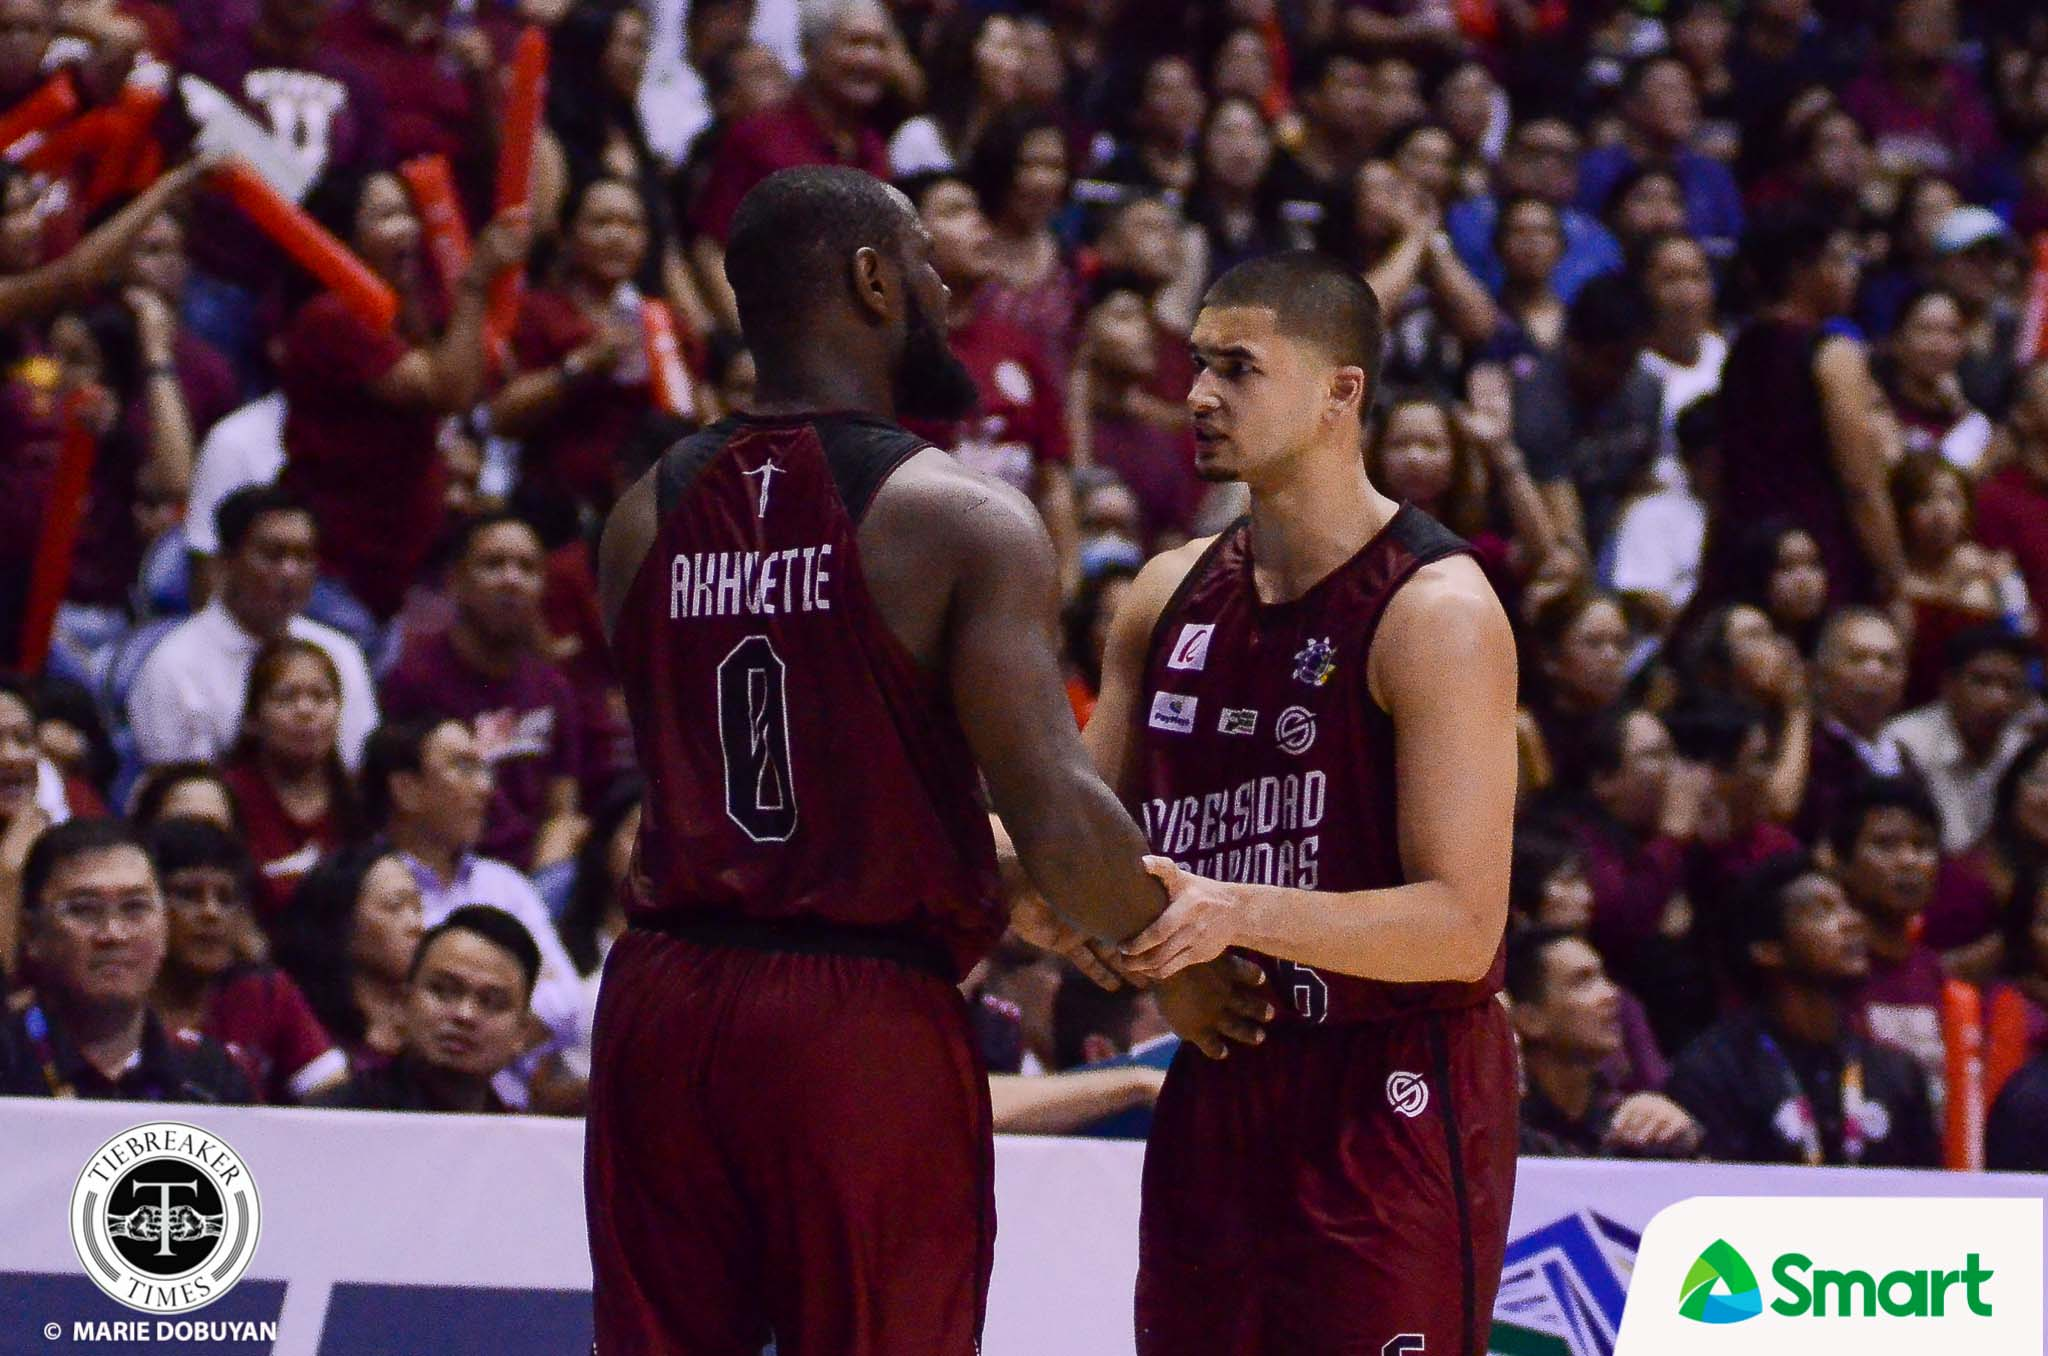 Tiebreaker Times Learning experience for Kobe Paras after facing Ateneo for first time Basketball News UAAP UP  UP Men's Basketball UAAP Season 82 Men's Basketball UAAP Season 82 Kobe Paras